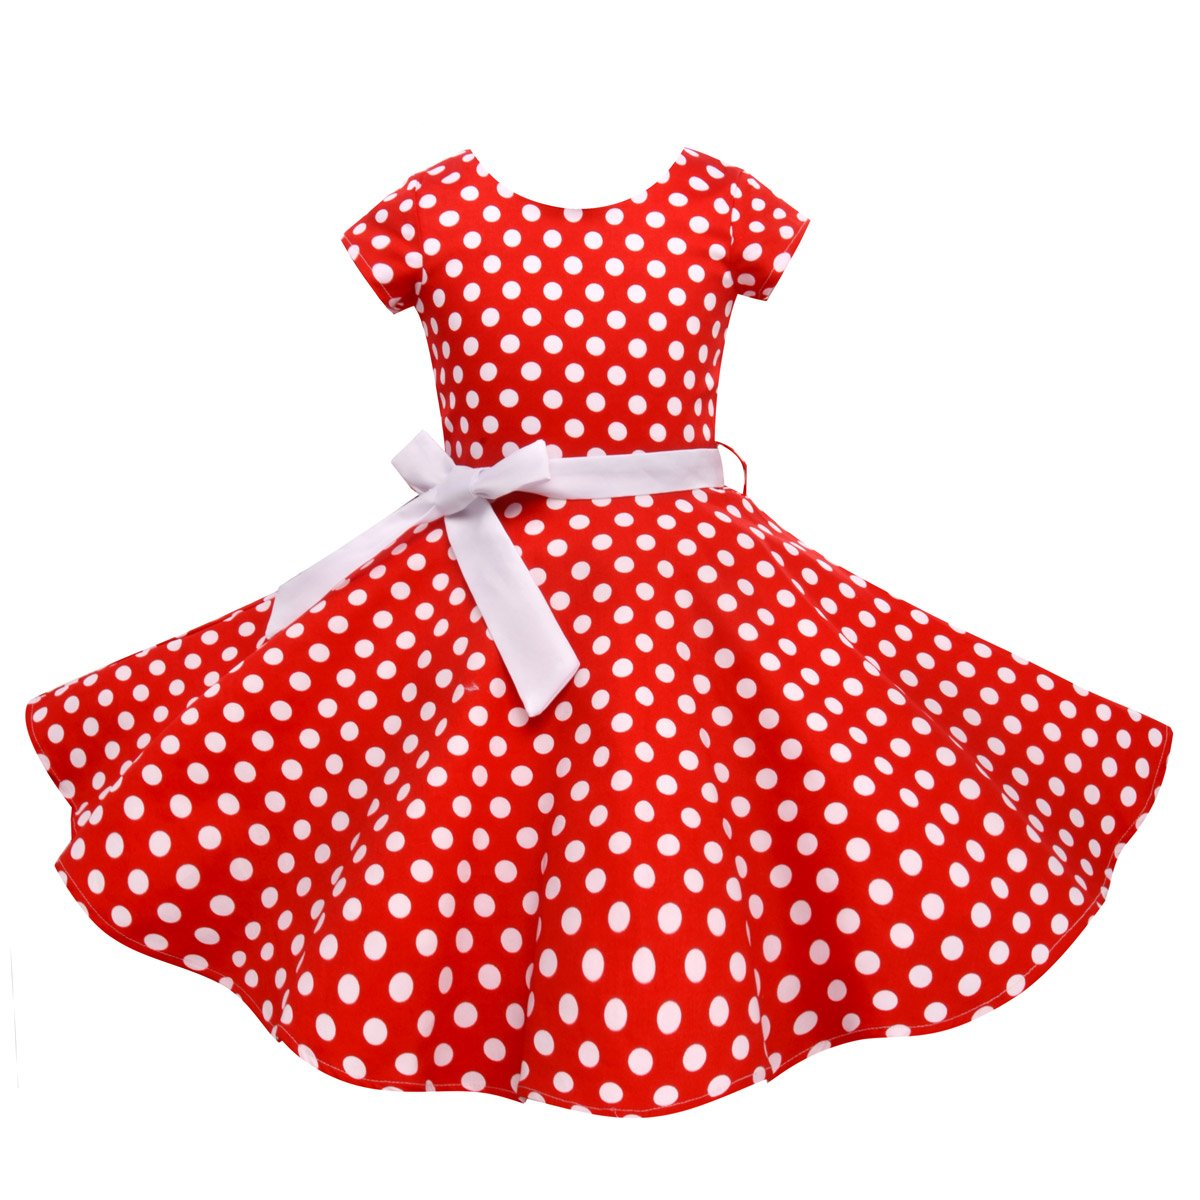 HB HBB MAGIC Vintage Girls Dresses Polka Dot Swing Rockabilly Dresses for Girls for Party Special Occasion by HB HBB MAGIC